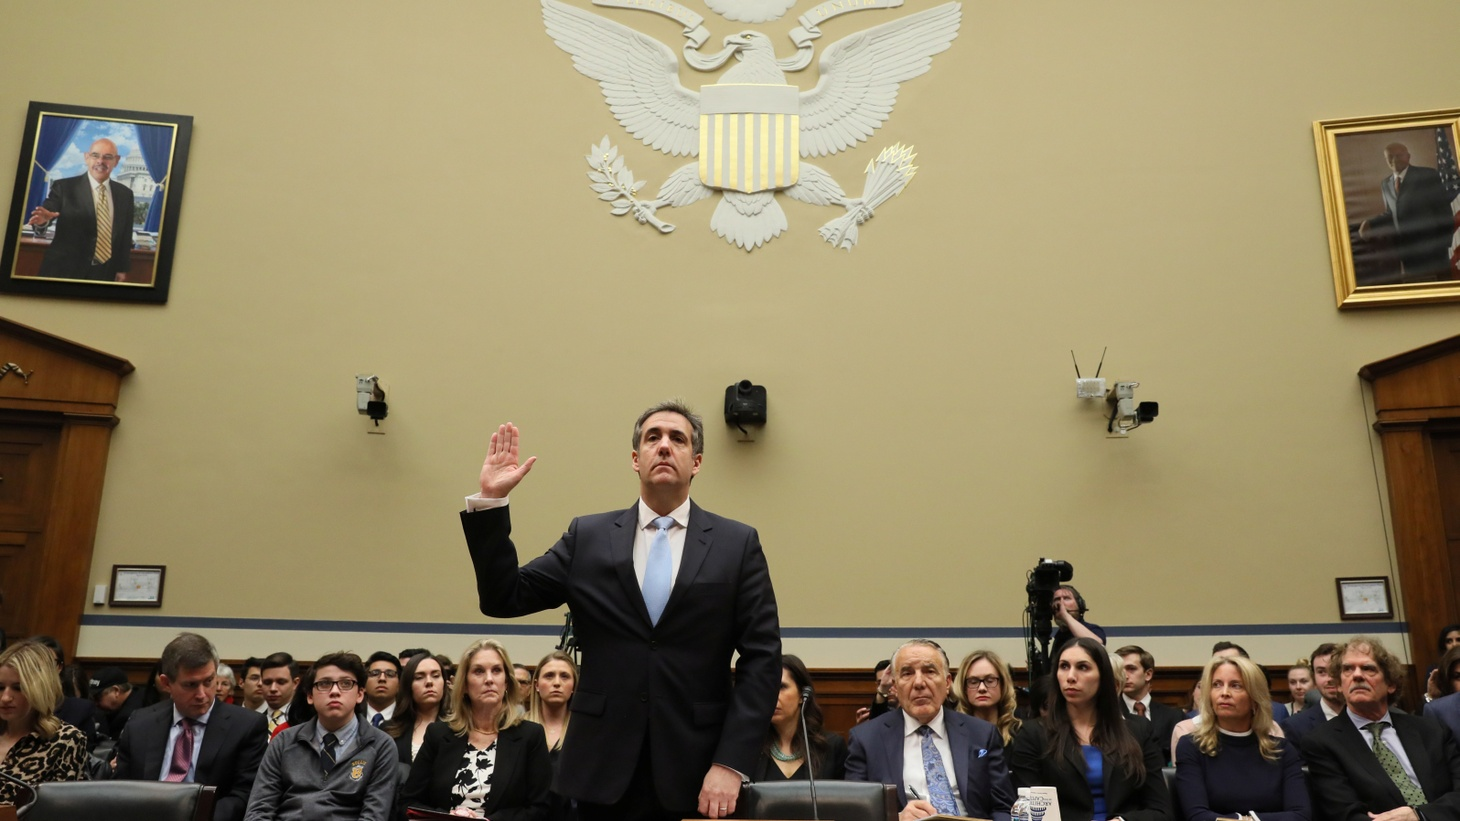 Michael Cohen, the former personal attorney of U.S. President Donald Trump, is sworn in to testify before a House Committee on Oversight and Reform hearing on Capitol Hill in Washington, U.S., February 27, 2019.